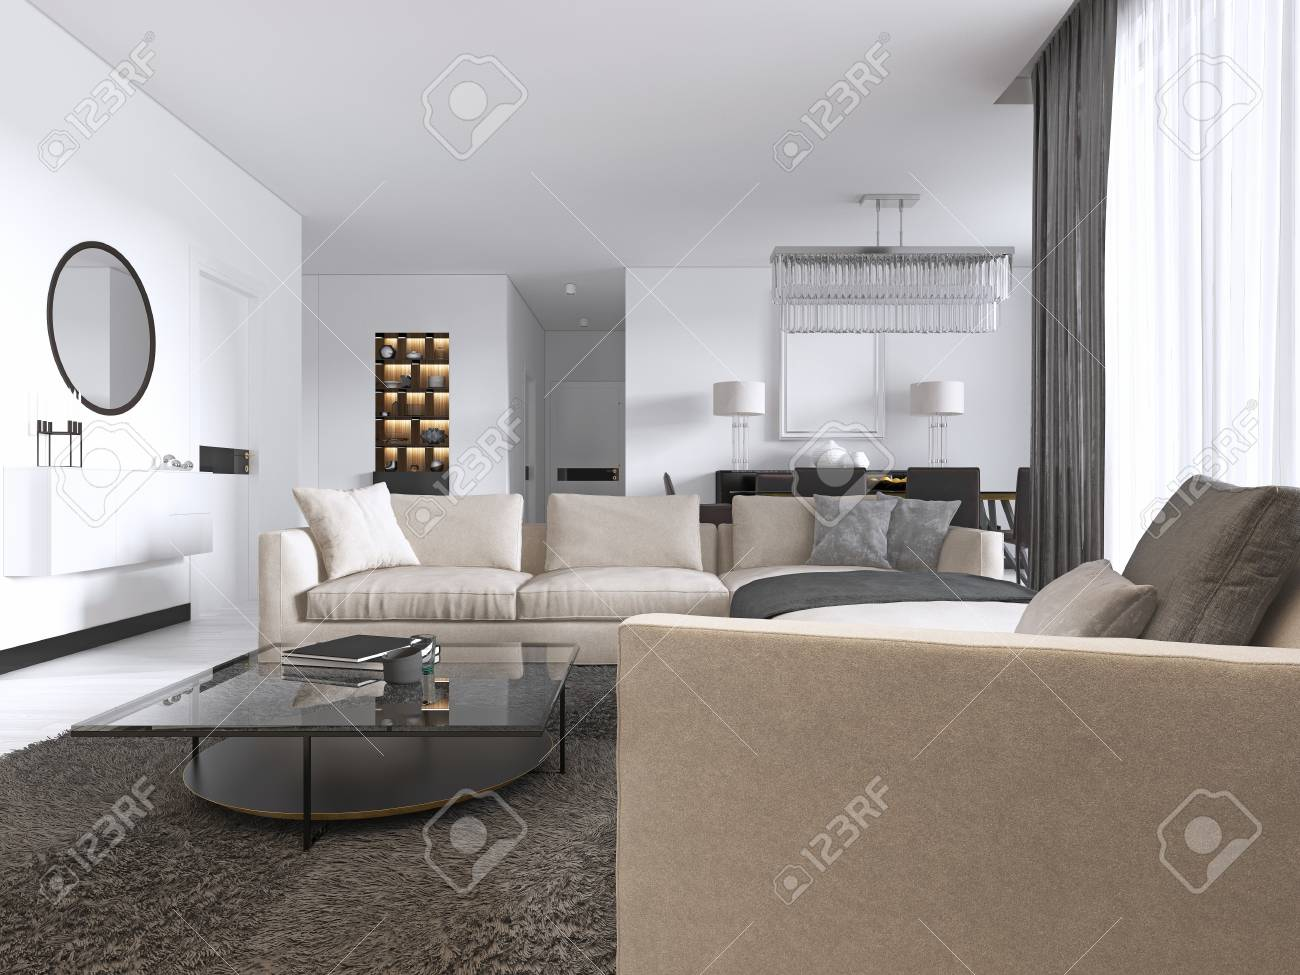 Tremendous Modern Light Contemporary Living Room With Large Corner Sofa Complete Home Design Collection Barbaintelli Responsecom